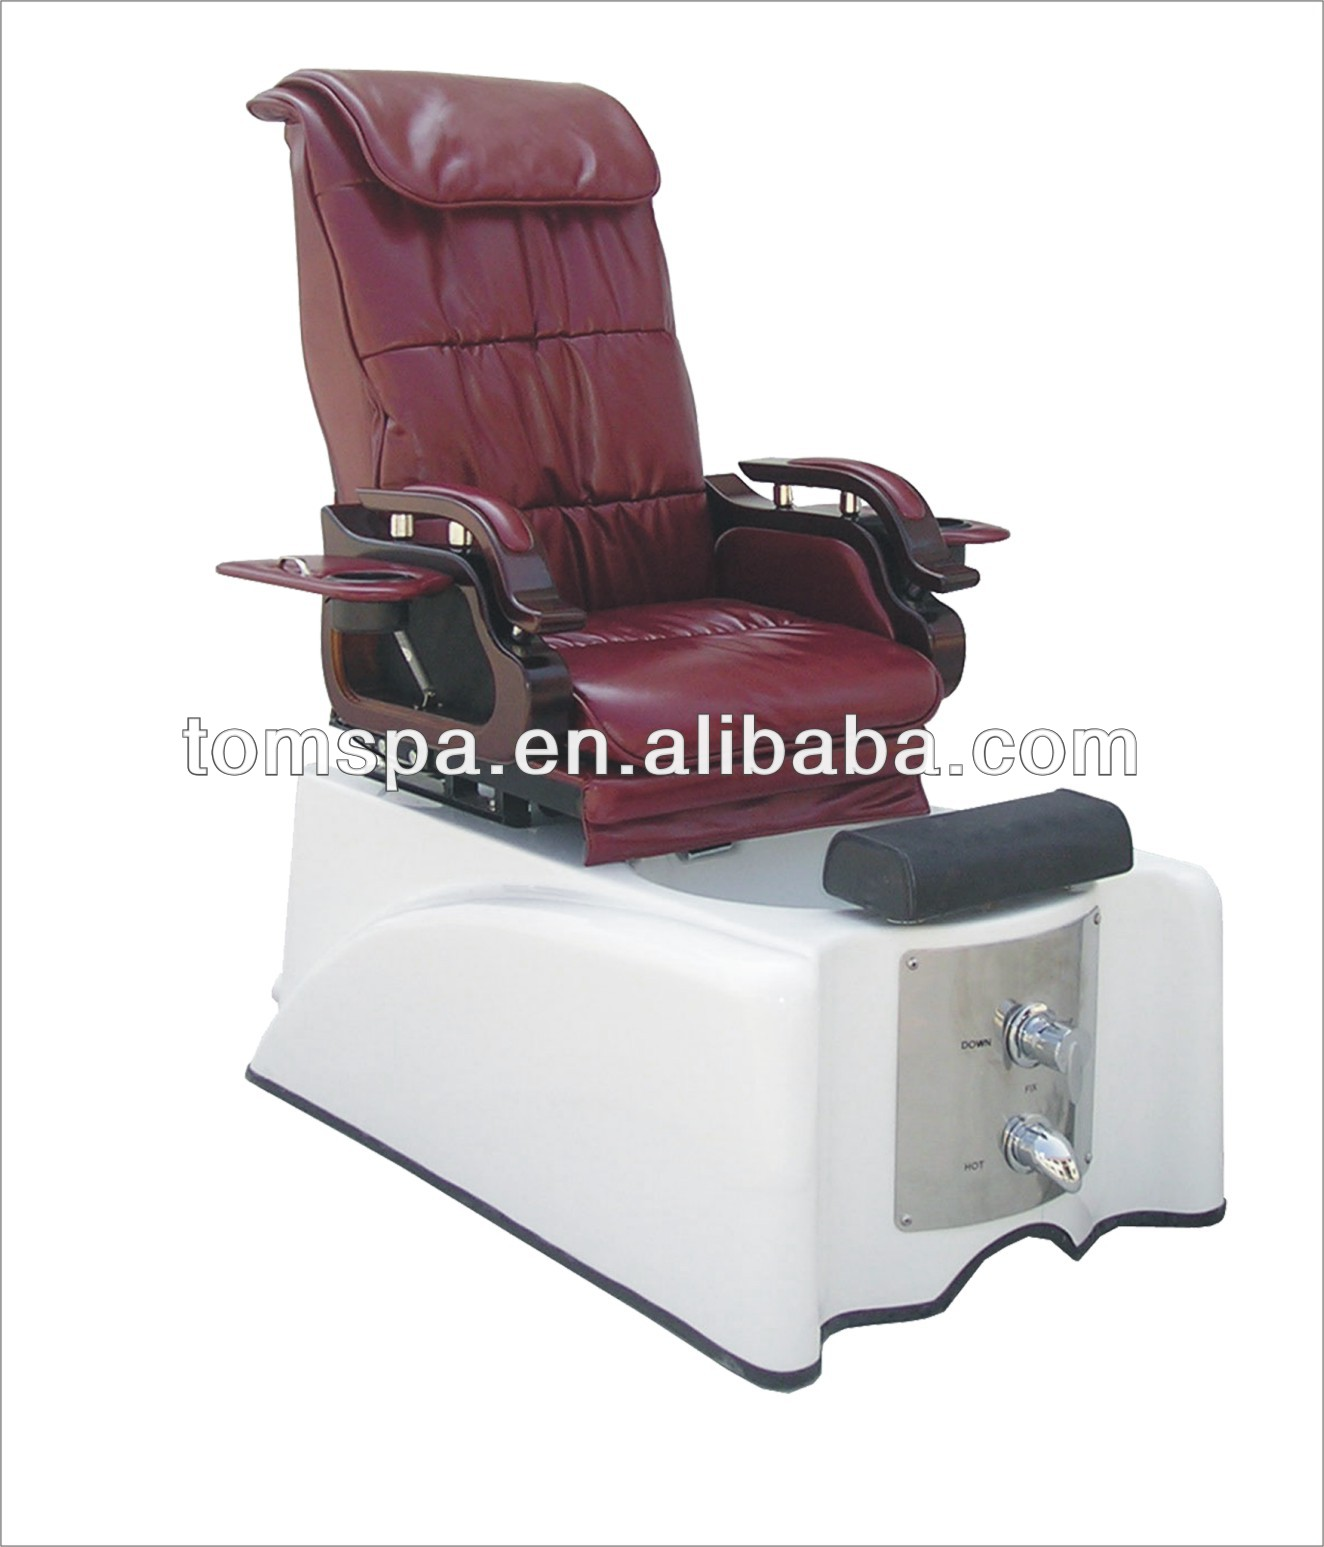 T4 Spa Pedicure Chairs T4 Spa Pedicure Chairs Suppliers and